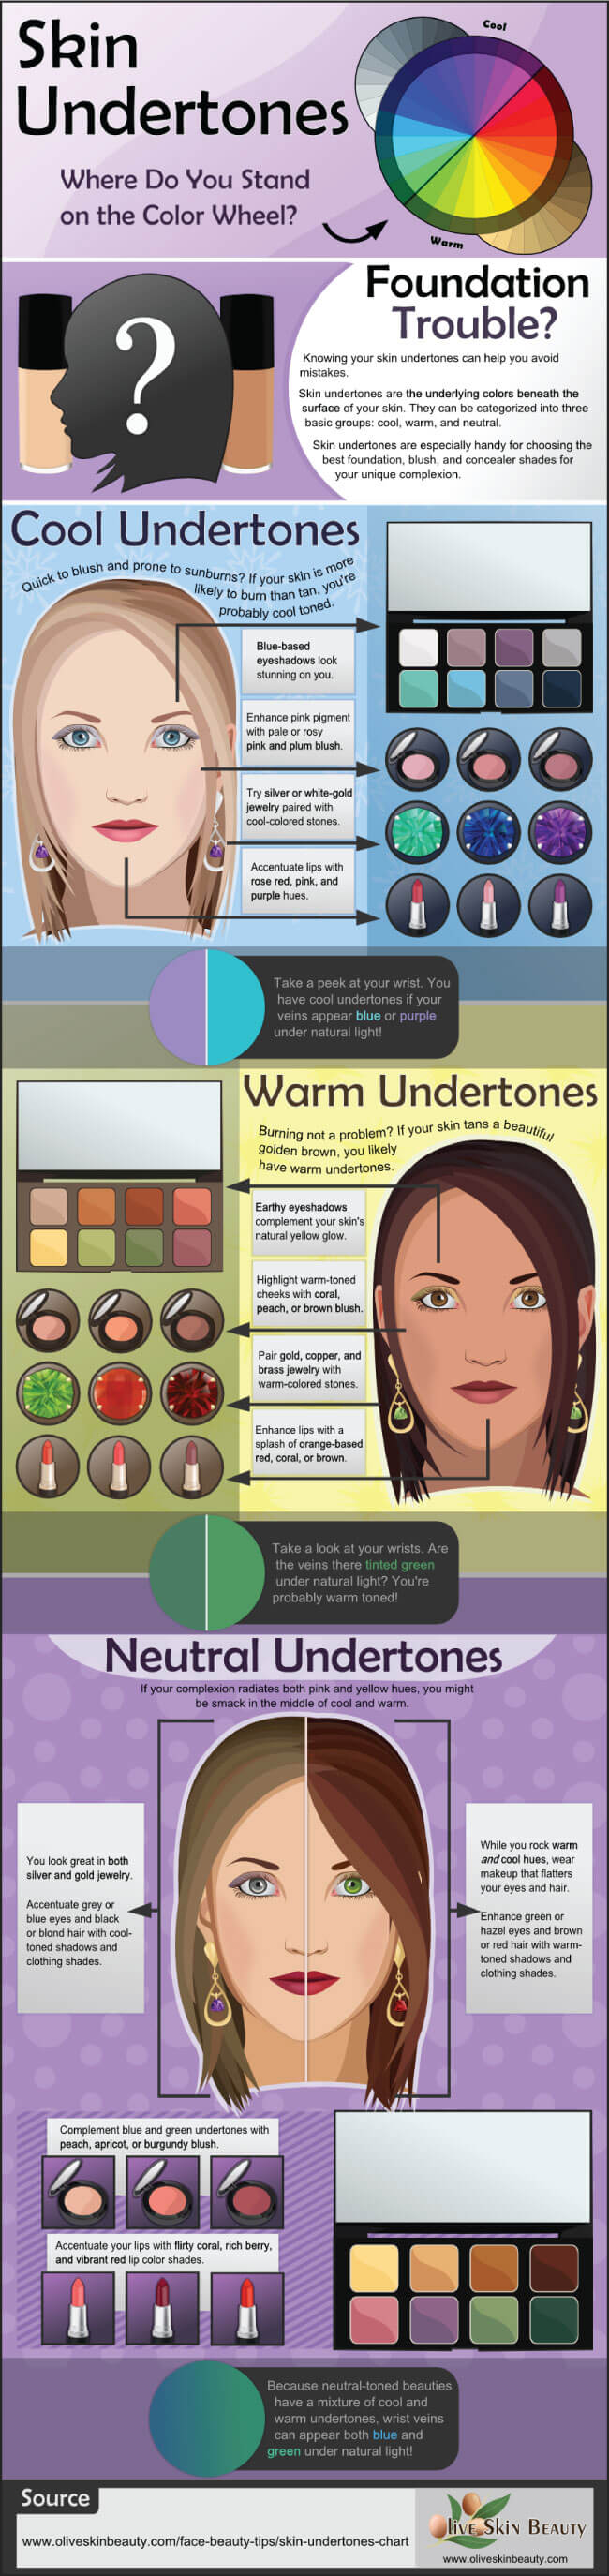 Image titled 'Tips to Know Your Skin Undertones for Makeup'